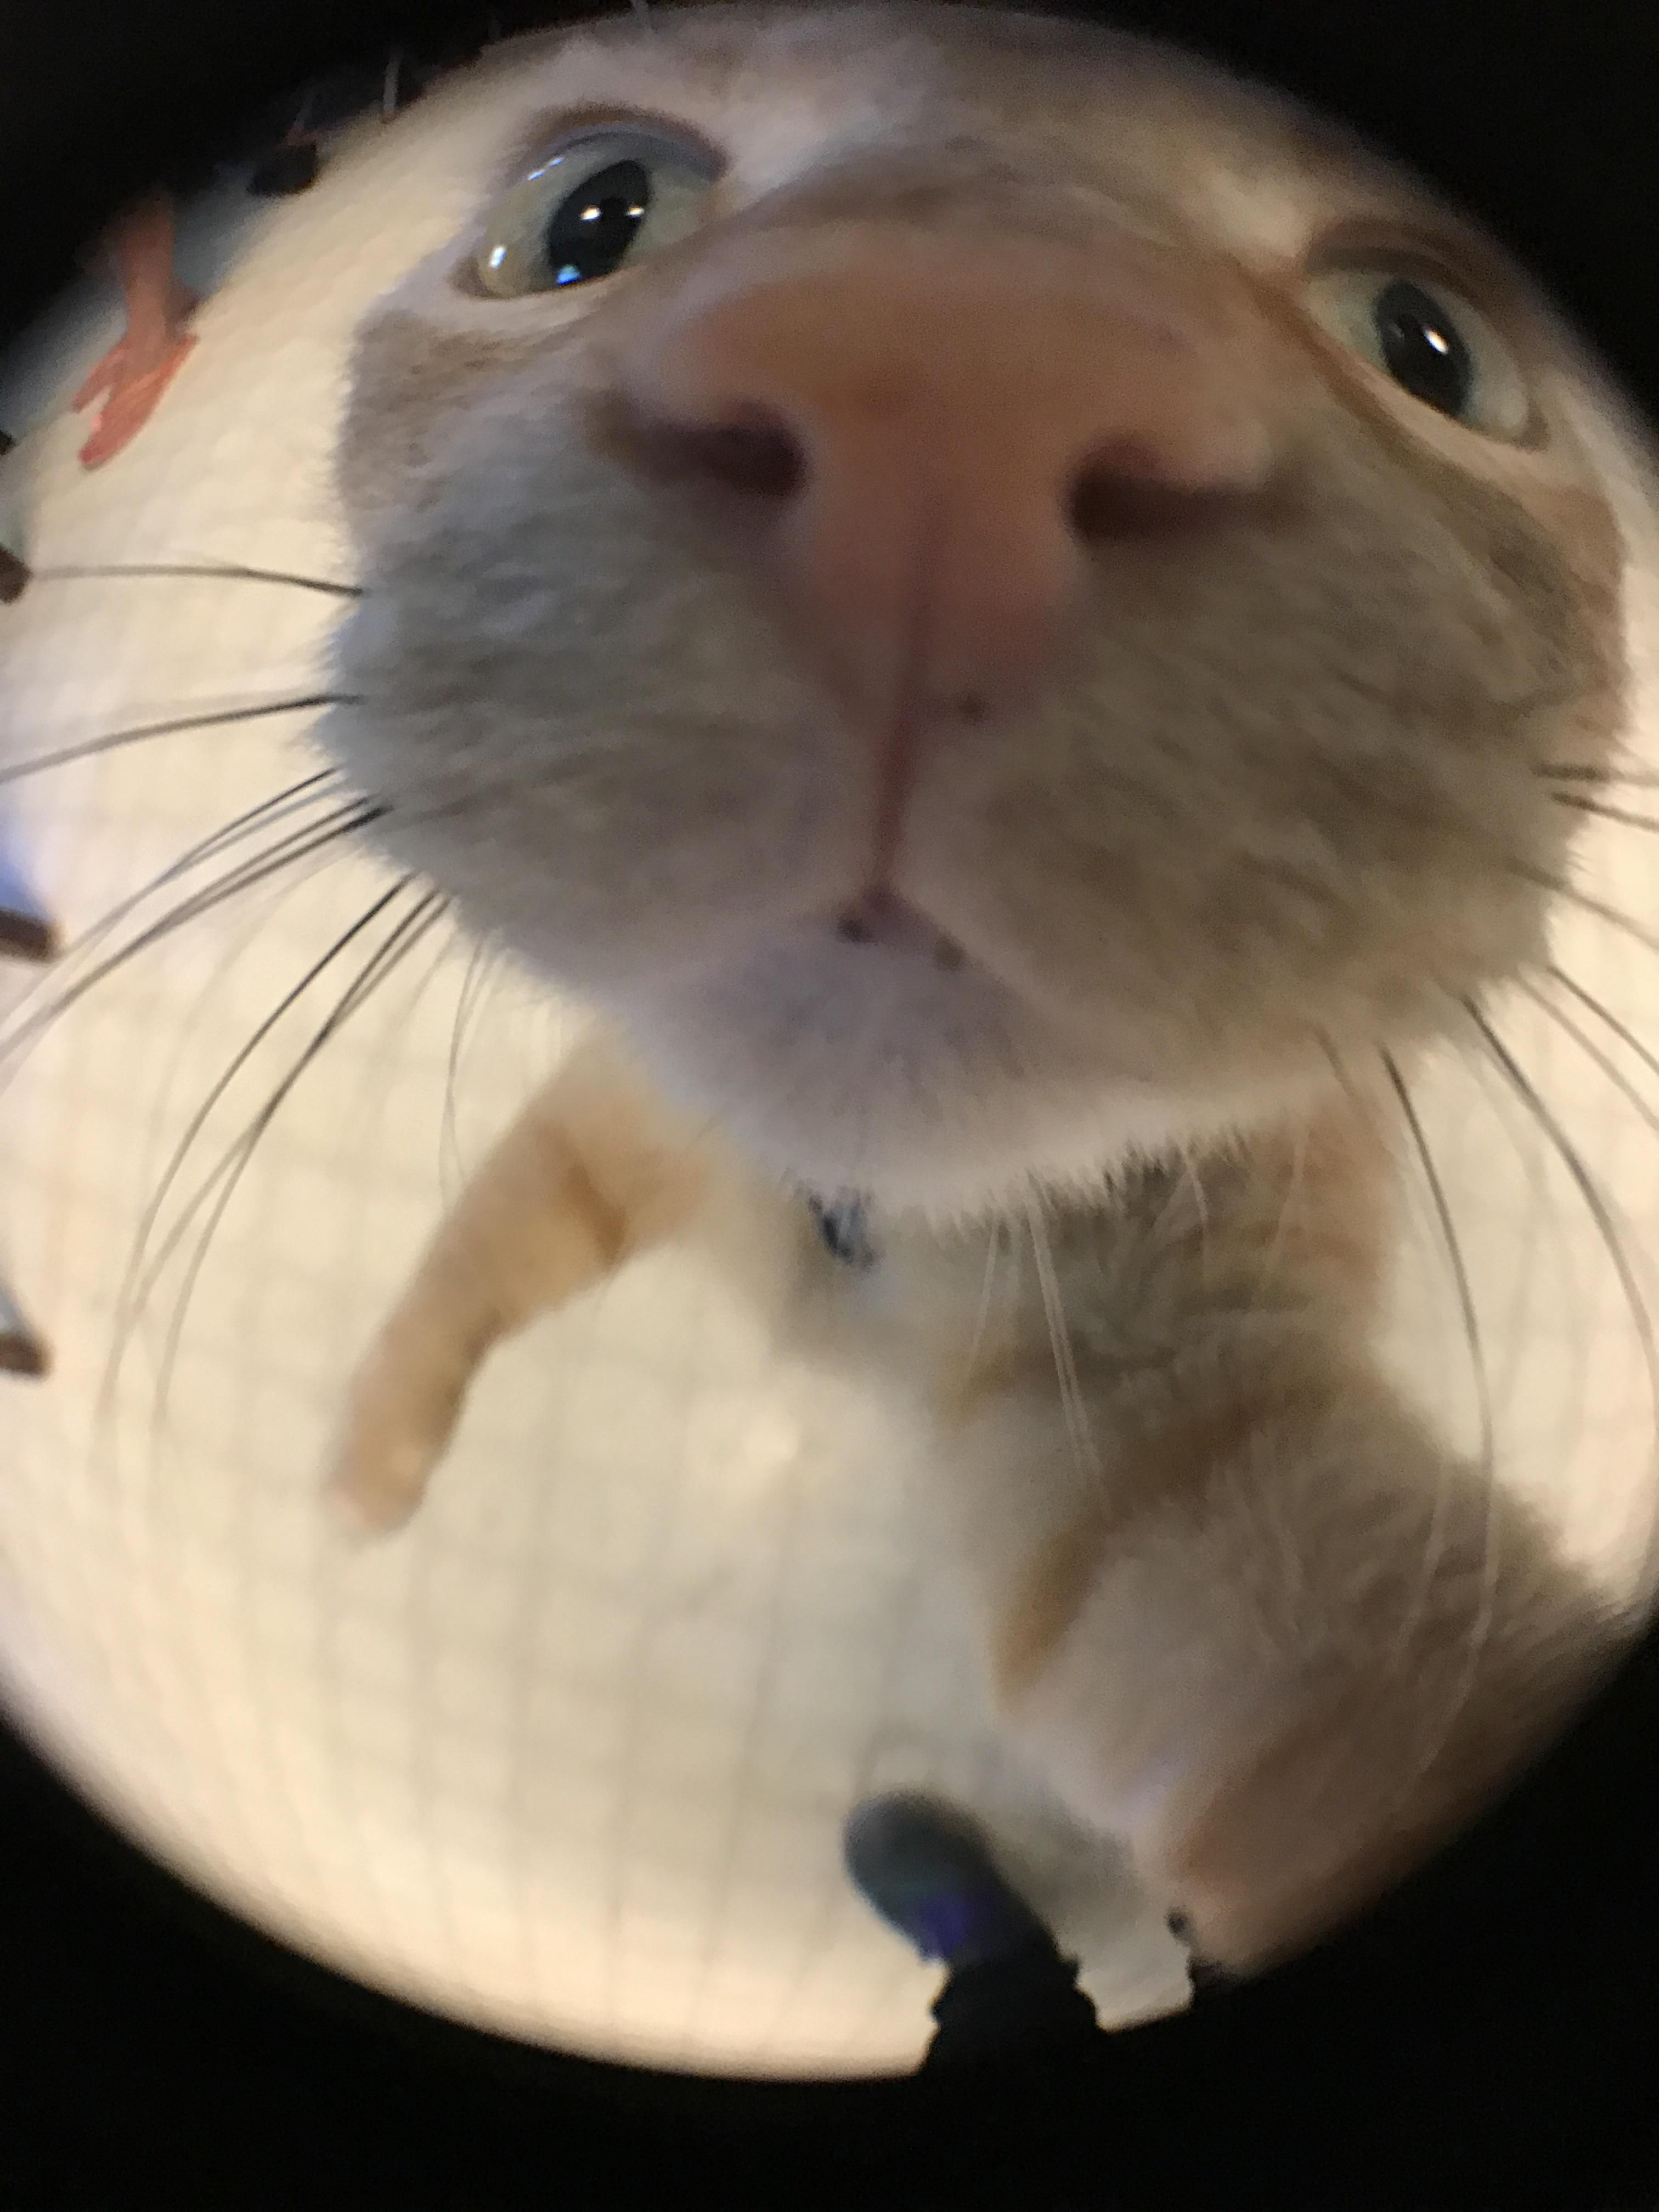 i got a fish eye lens for my phone and my cat was